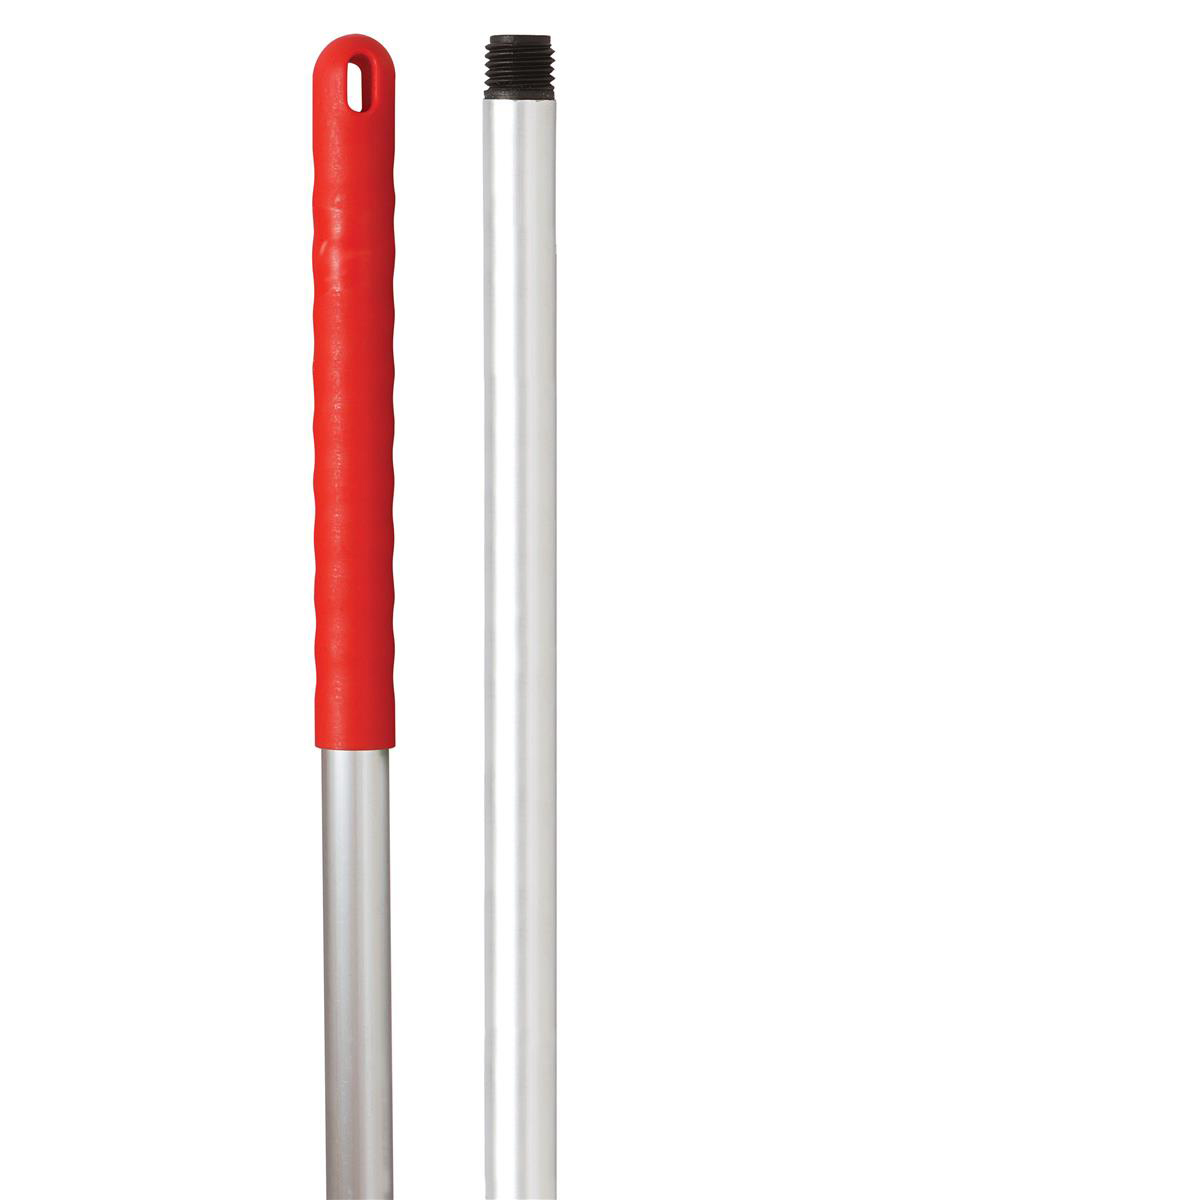 Broom or mop handles Robert Scott & Sons Abbey Hygiene Mop Handle Aluminium Colour-coded Screw 125cm Red Ref AH49Y